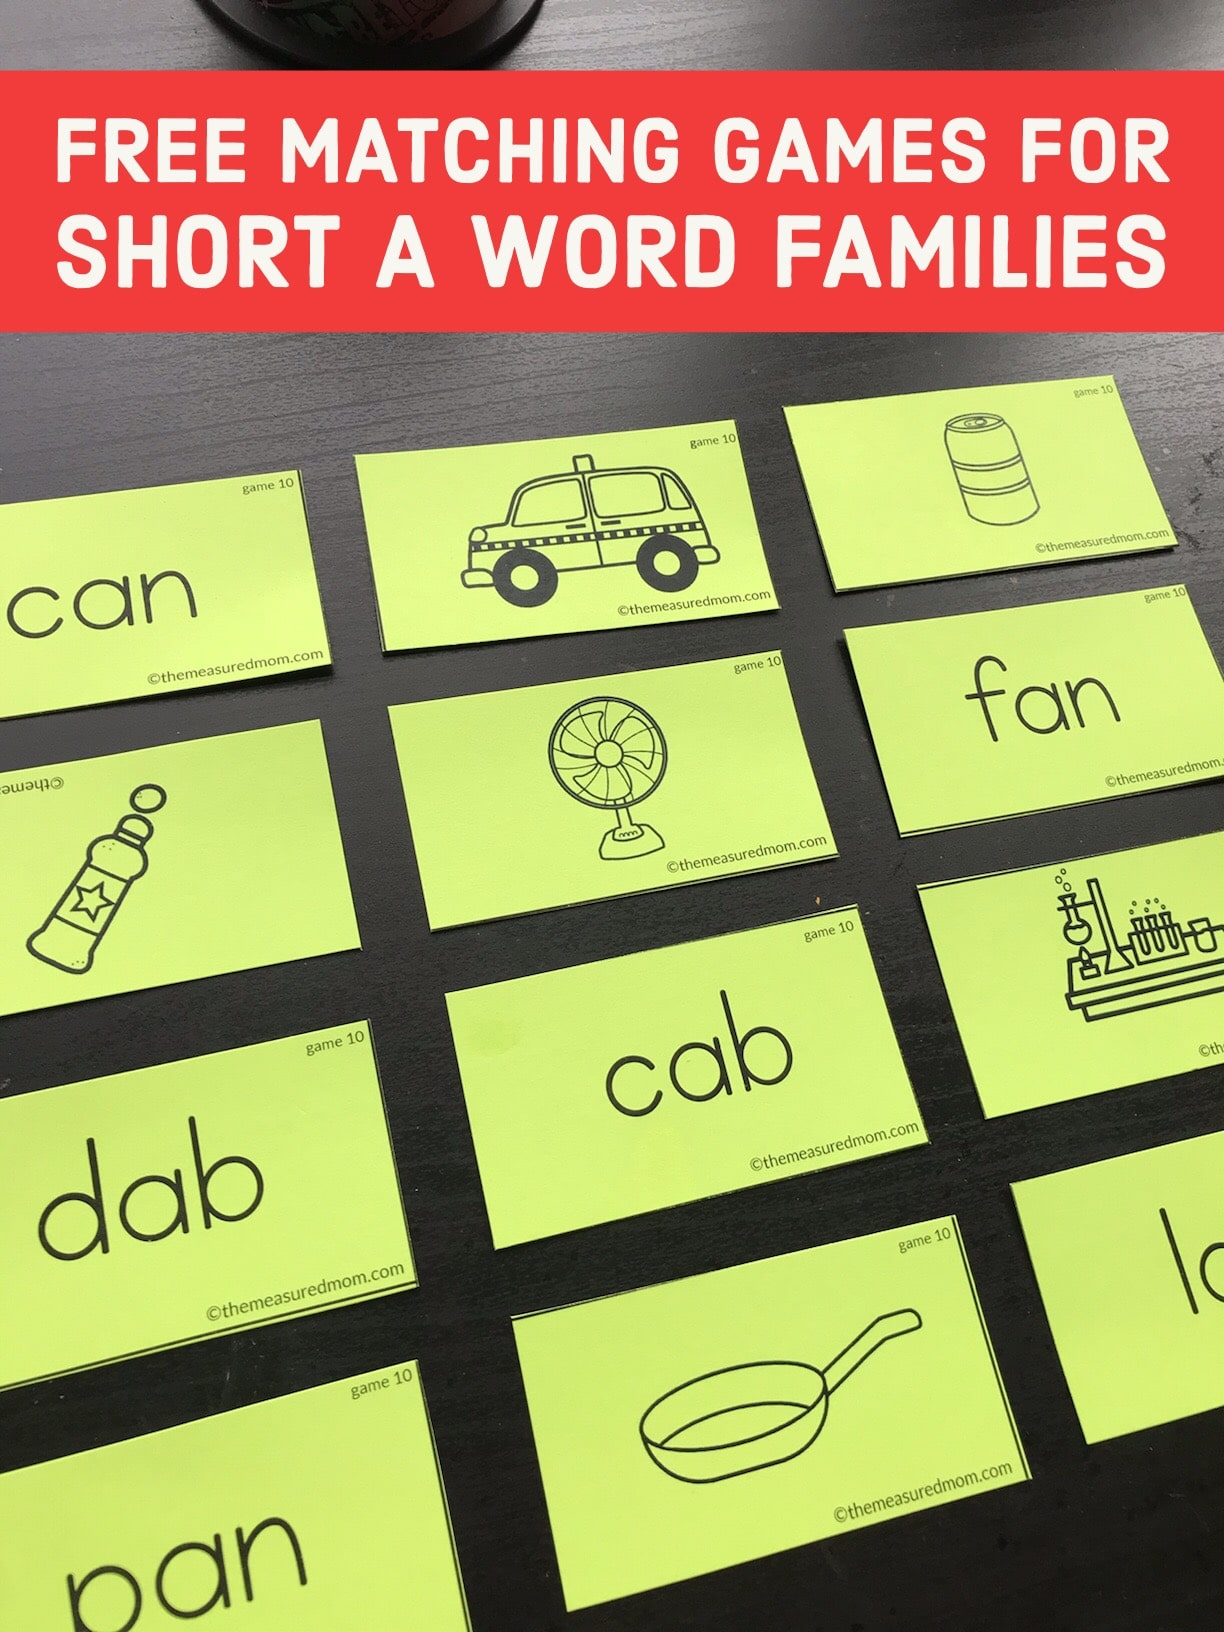 15 Free Memory Games For Short A Word Families